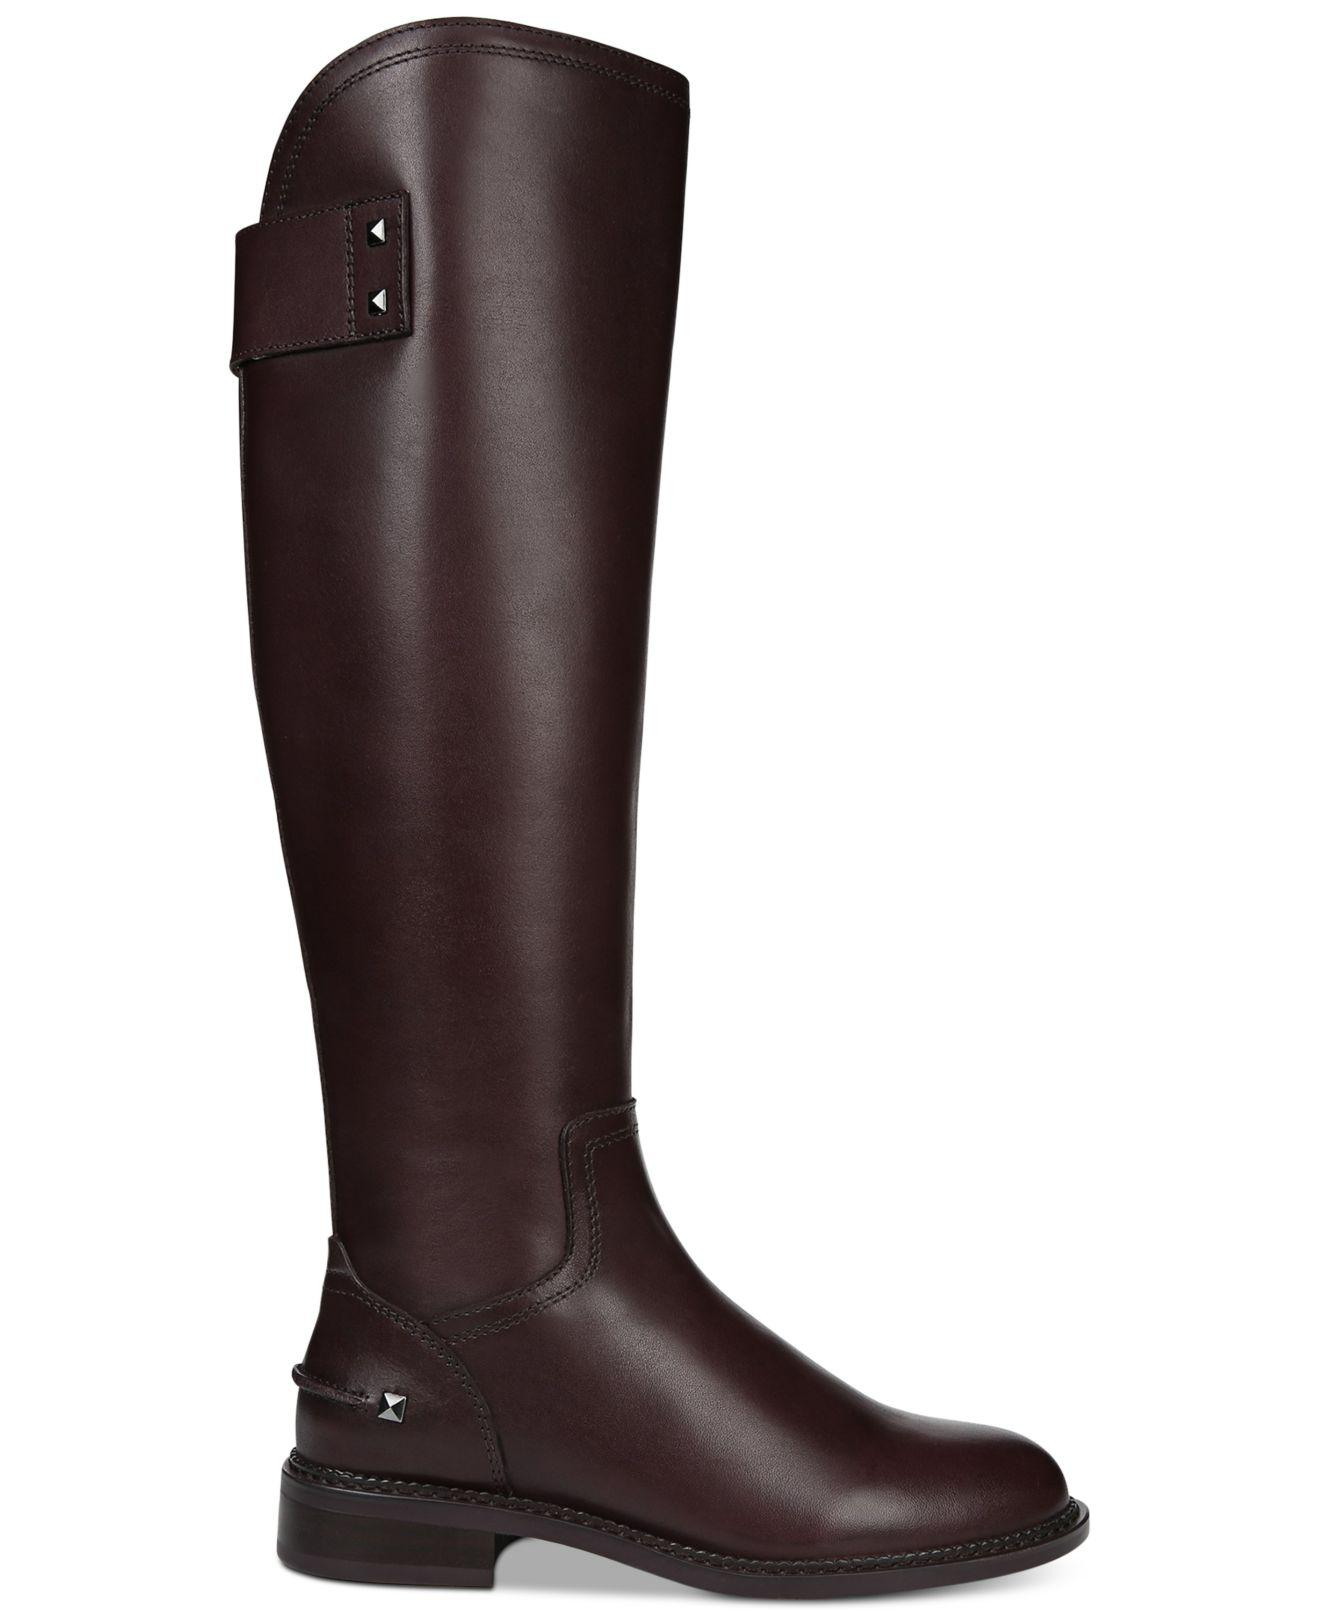 010be6ea81b2 Lyst - Franco Sarto Henrietta Riding Boots in Brown - Save 53%